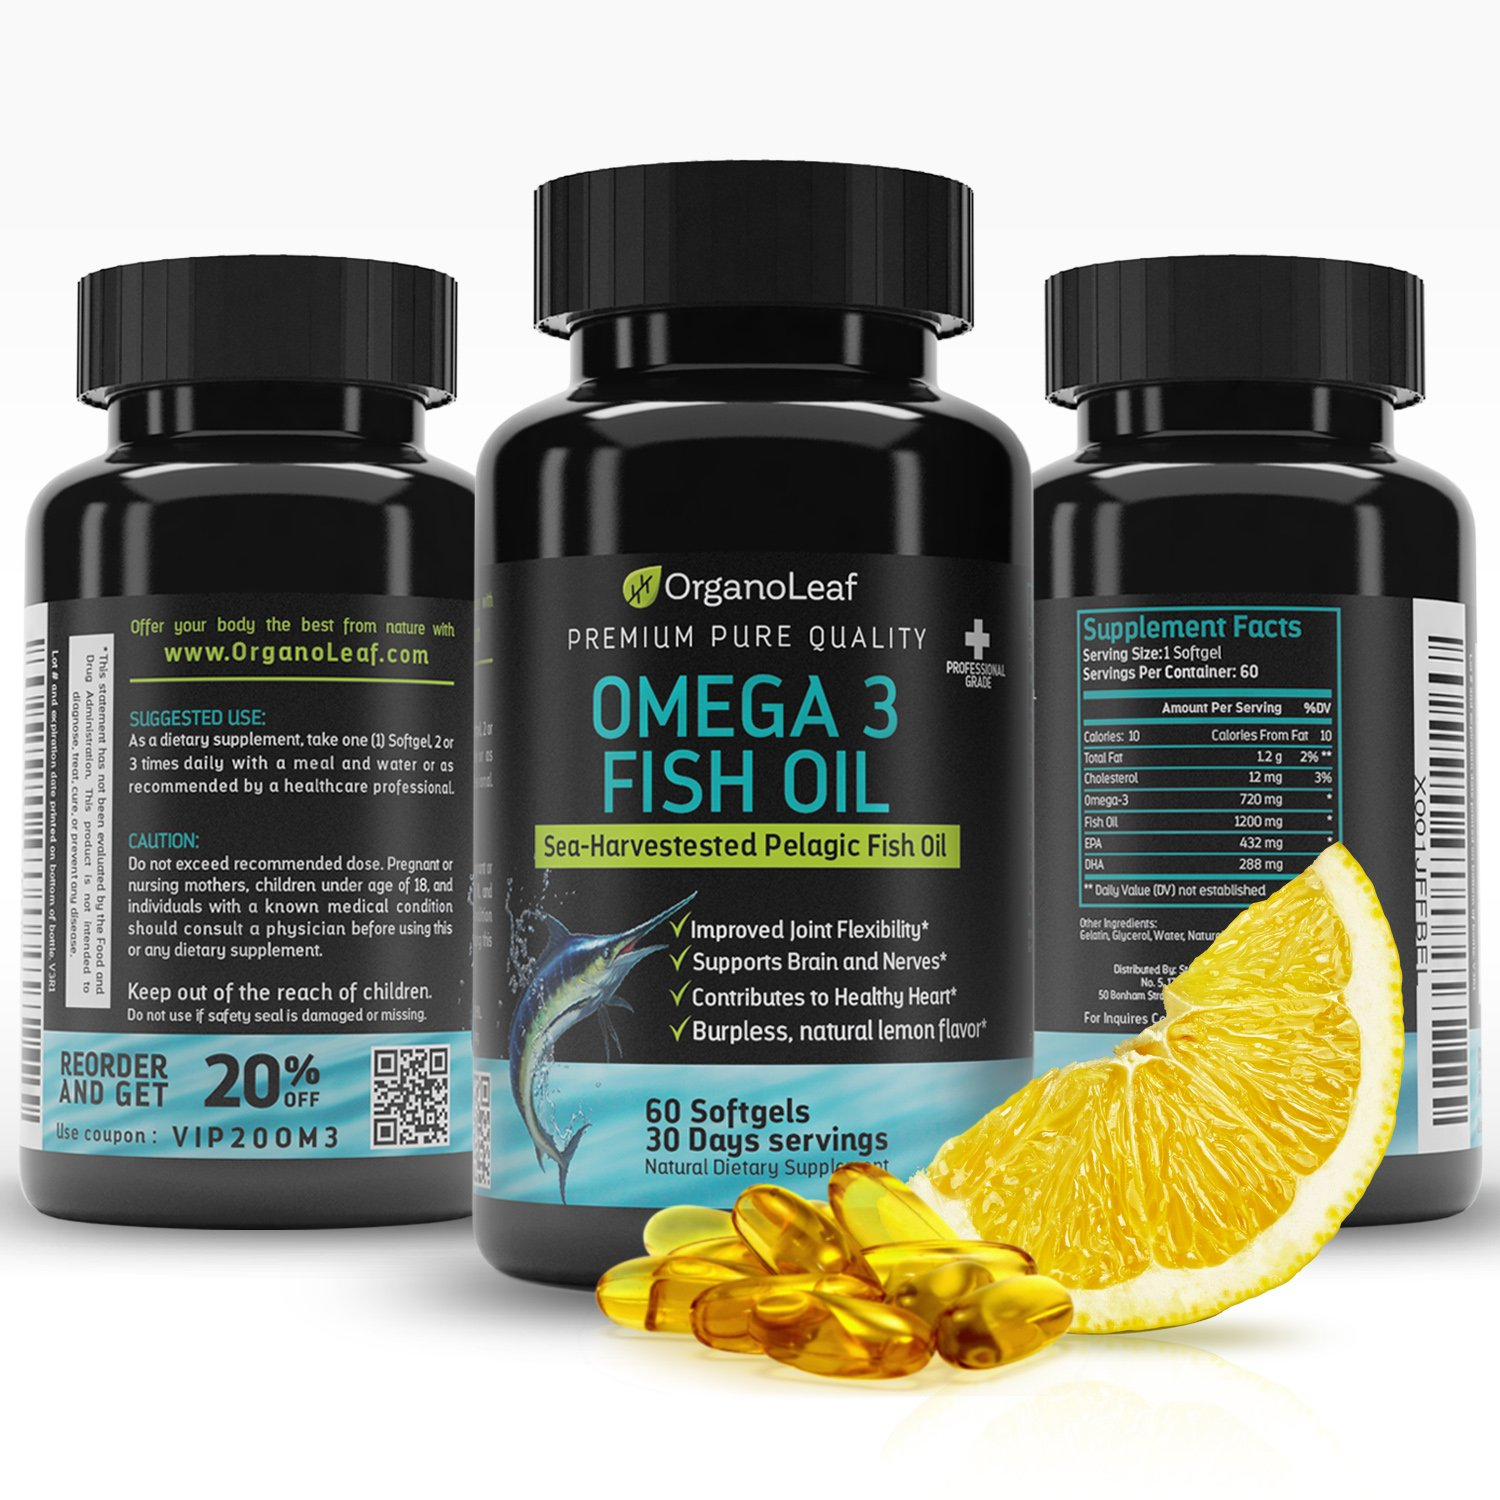 OrganoLeaf - Omega 3 Fish Oil Supplement, Premium, Sea-Harvested Pelogic Fish Oil Supports the Immune and Cardio-Vascular System, Triple Strength 2400mg, Lemon Flavor, 60 Softgels